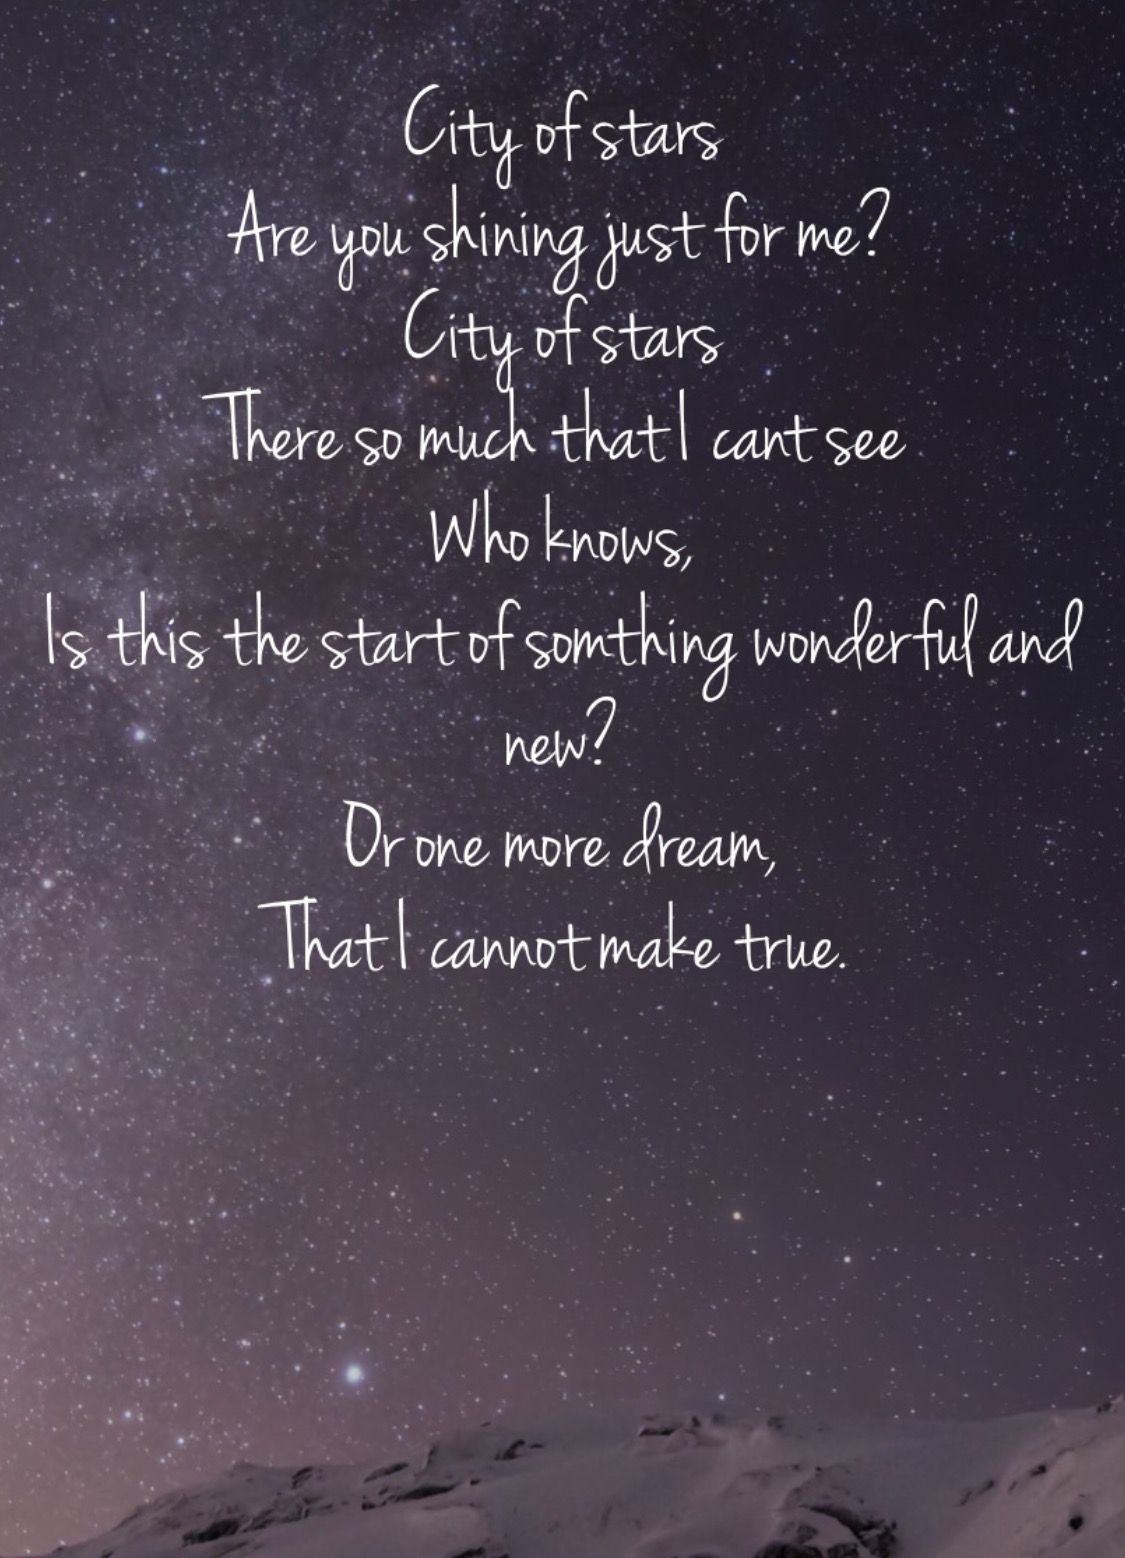 Peter Pan Quote Iphone Wallpaper City Of Stars Ryan Gosling And Emma Stone Favorite